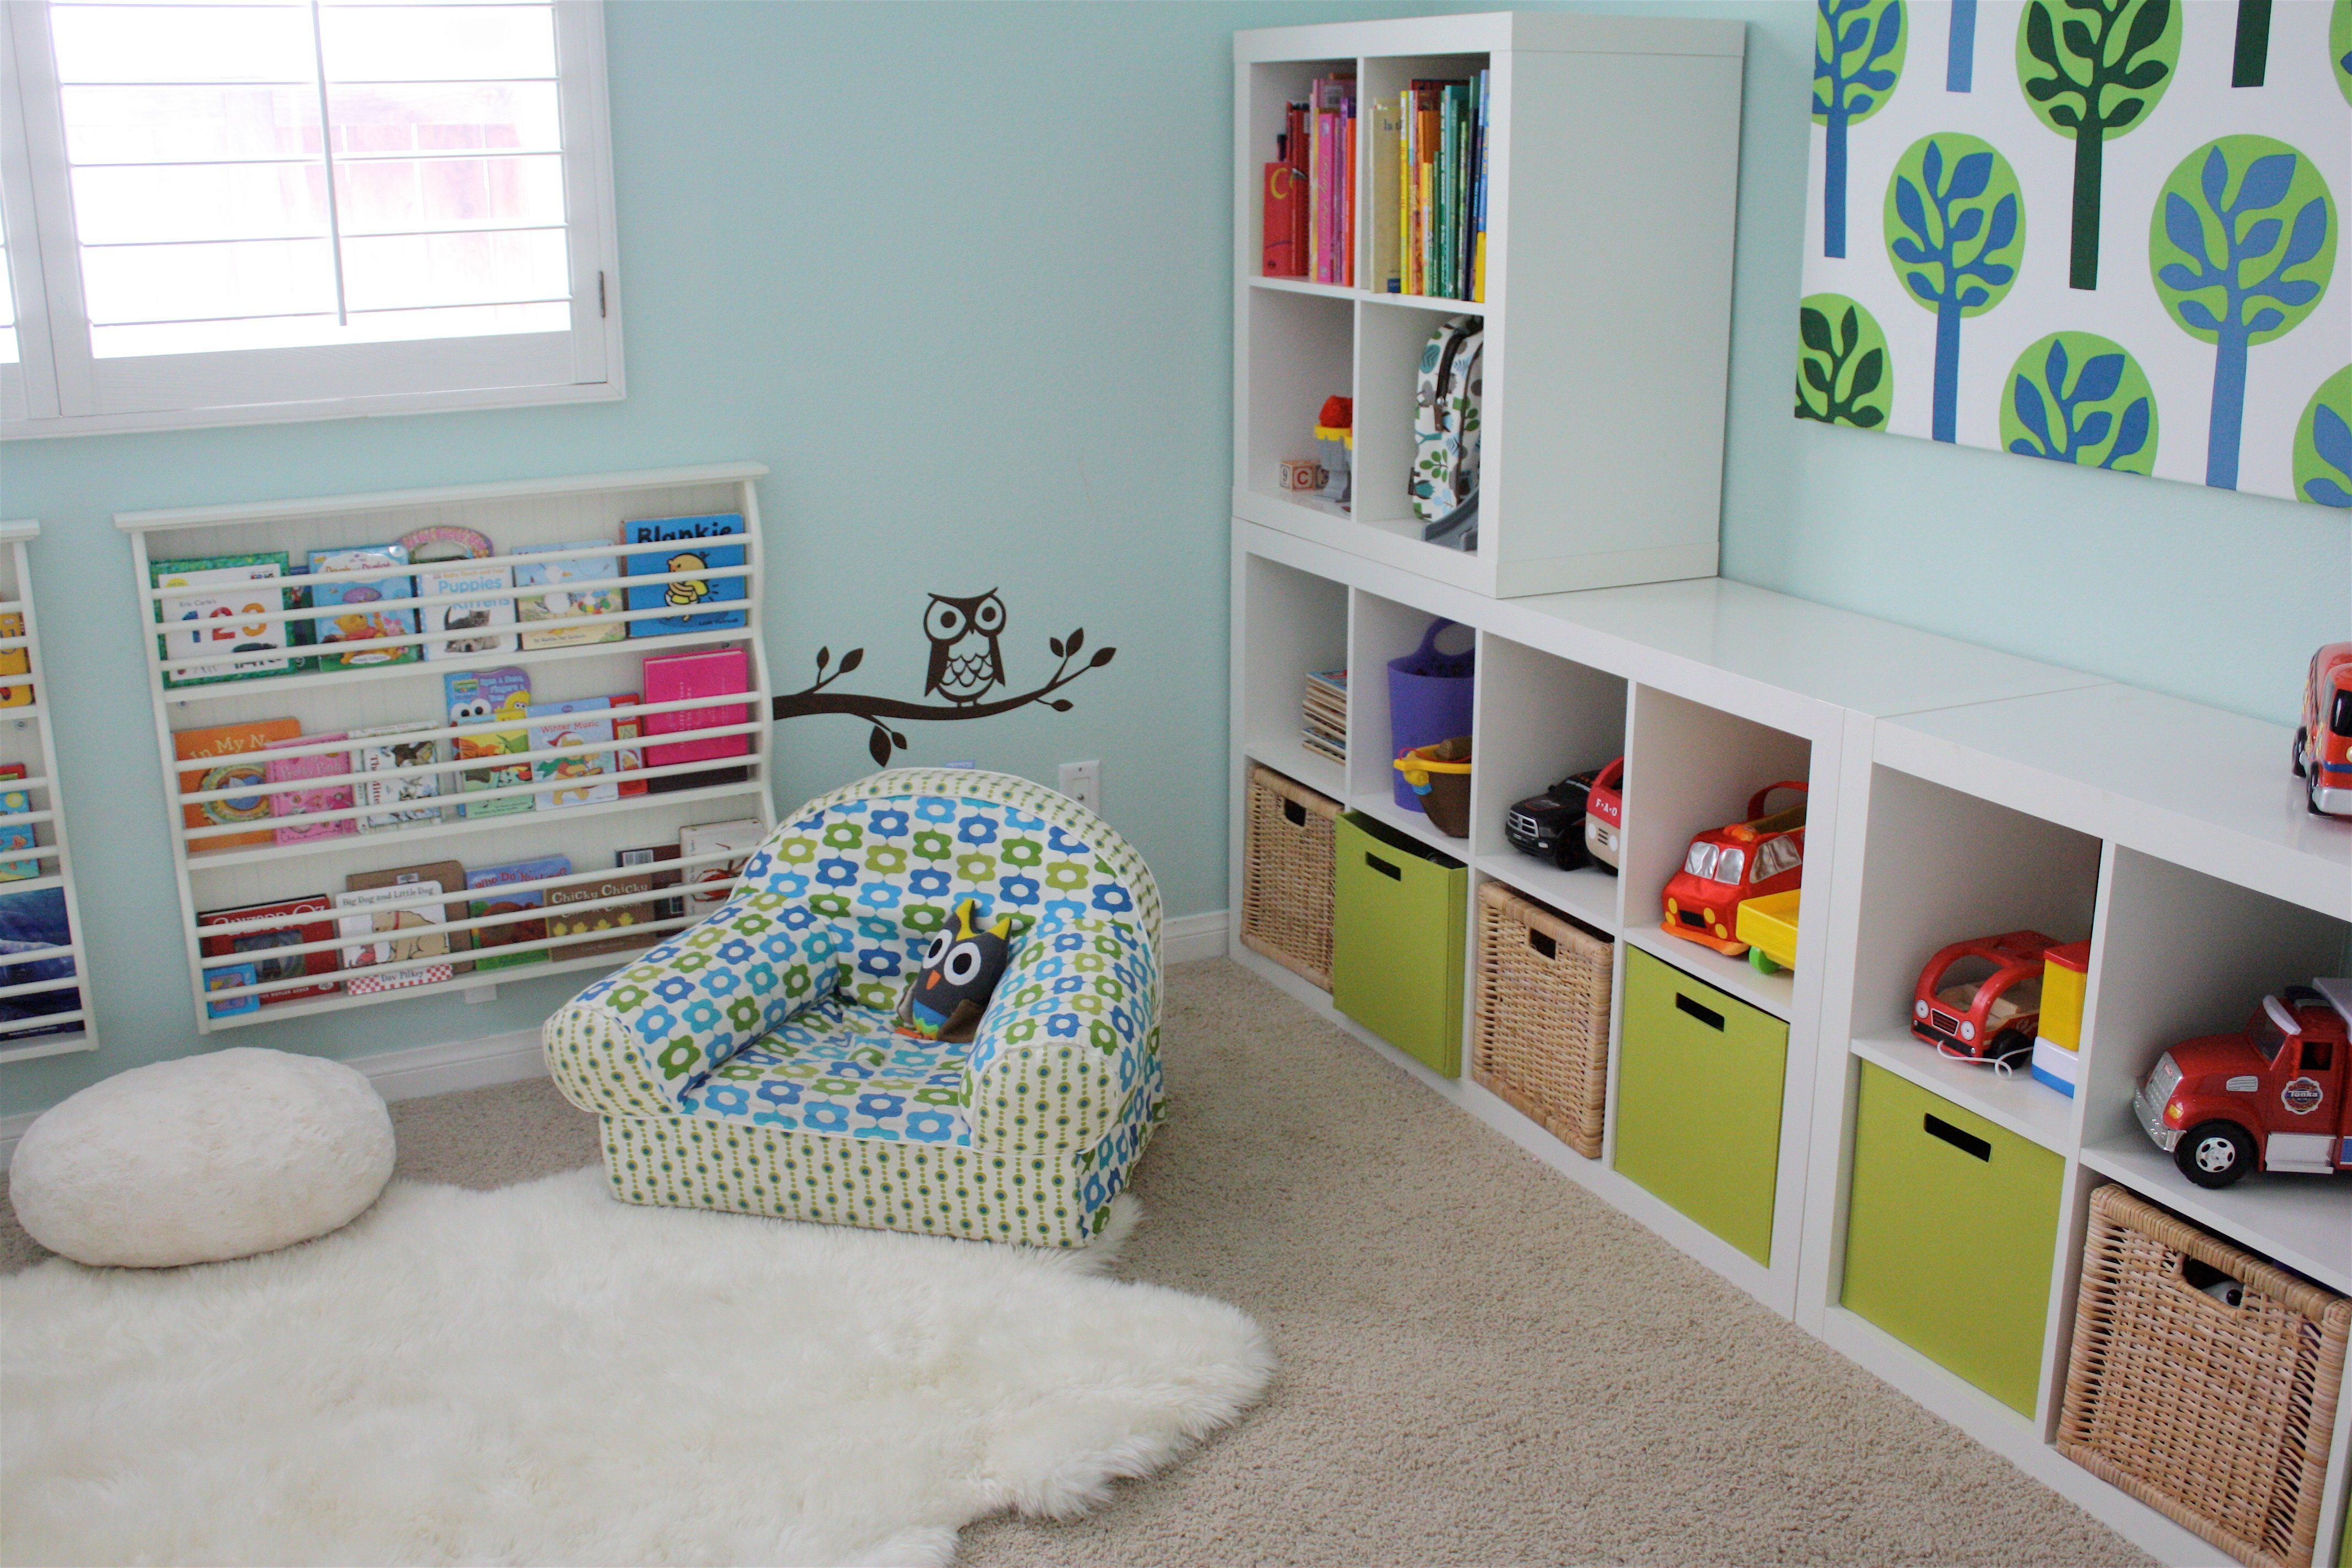 astounding picture kids playroom furniture. Mesmerizing Kids Playroom Design Ideas By White Wooden Shelves For Boxes And Toys Placed On The Brown Floor Added With Blue Sofa Chair Near Fur Rug, Astounding Picture Furniture N